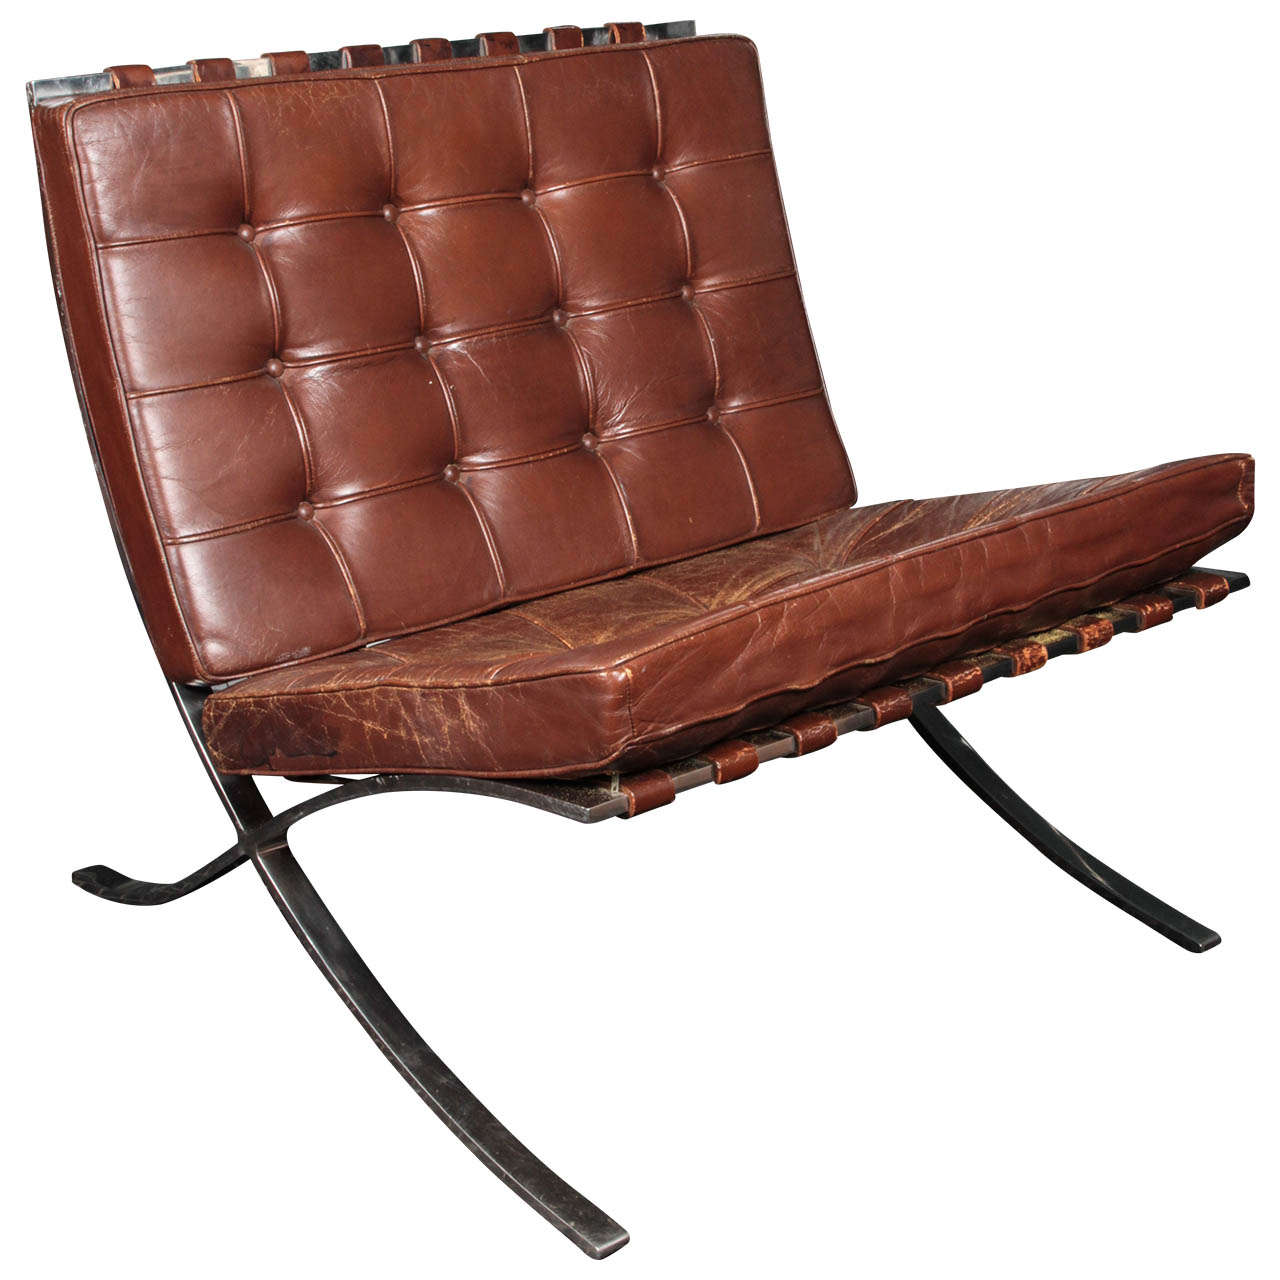 brown leather barcelona chair by ludwig mies van der rohe for knoll at 1stdibs. Black Bedroom Furniture Sets. Home Design Ideas